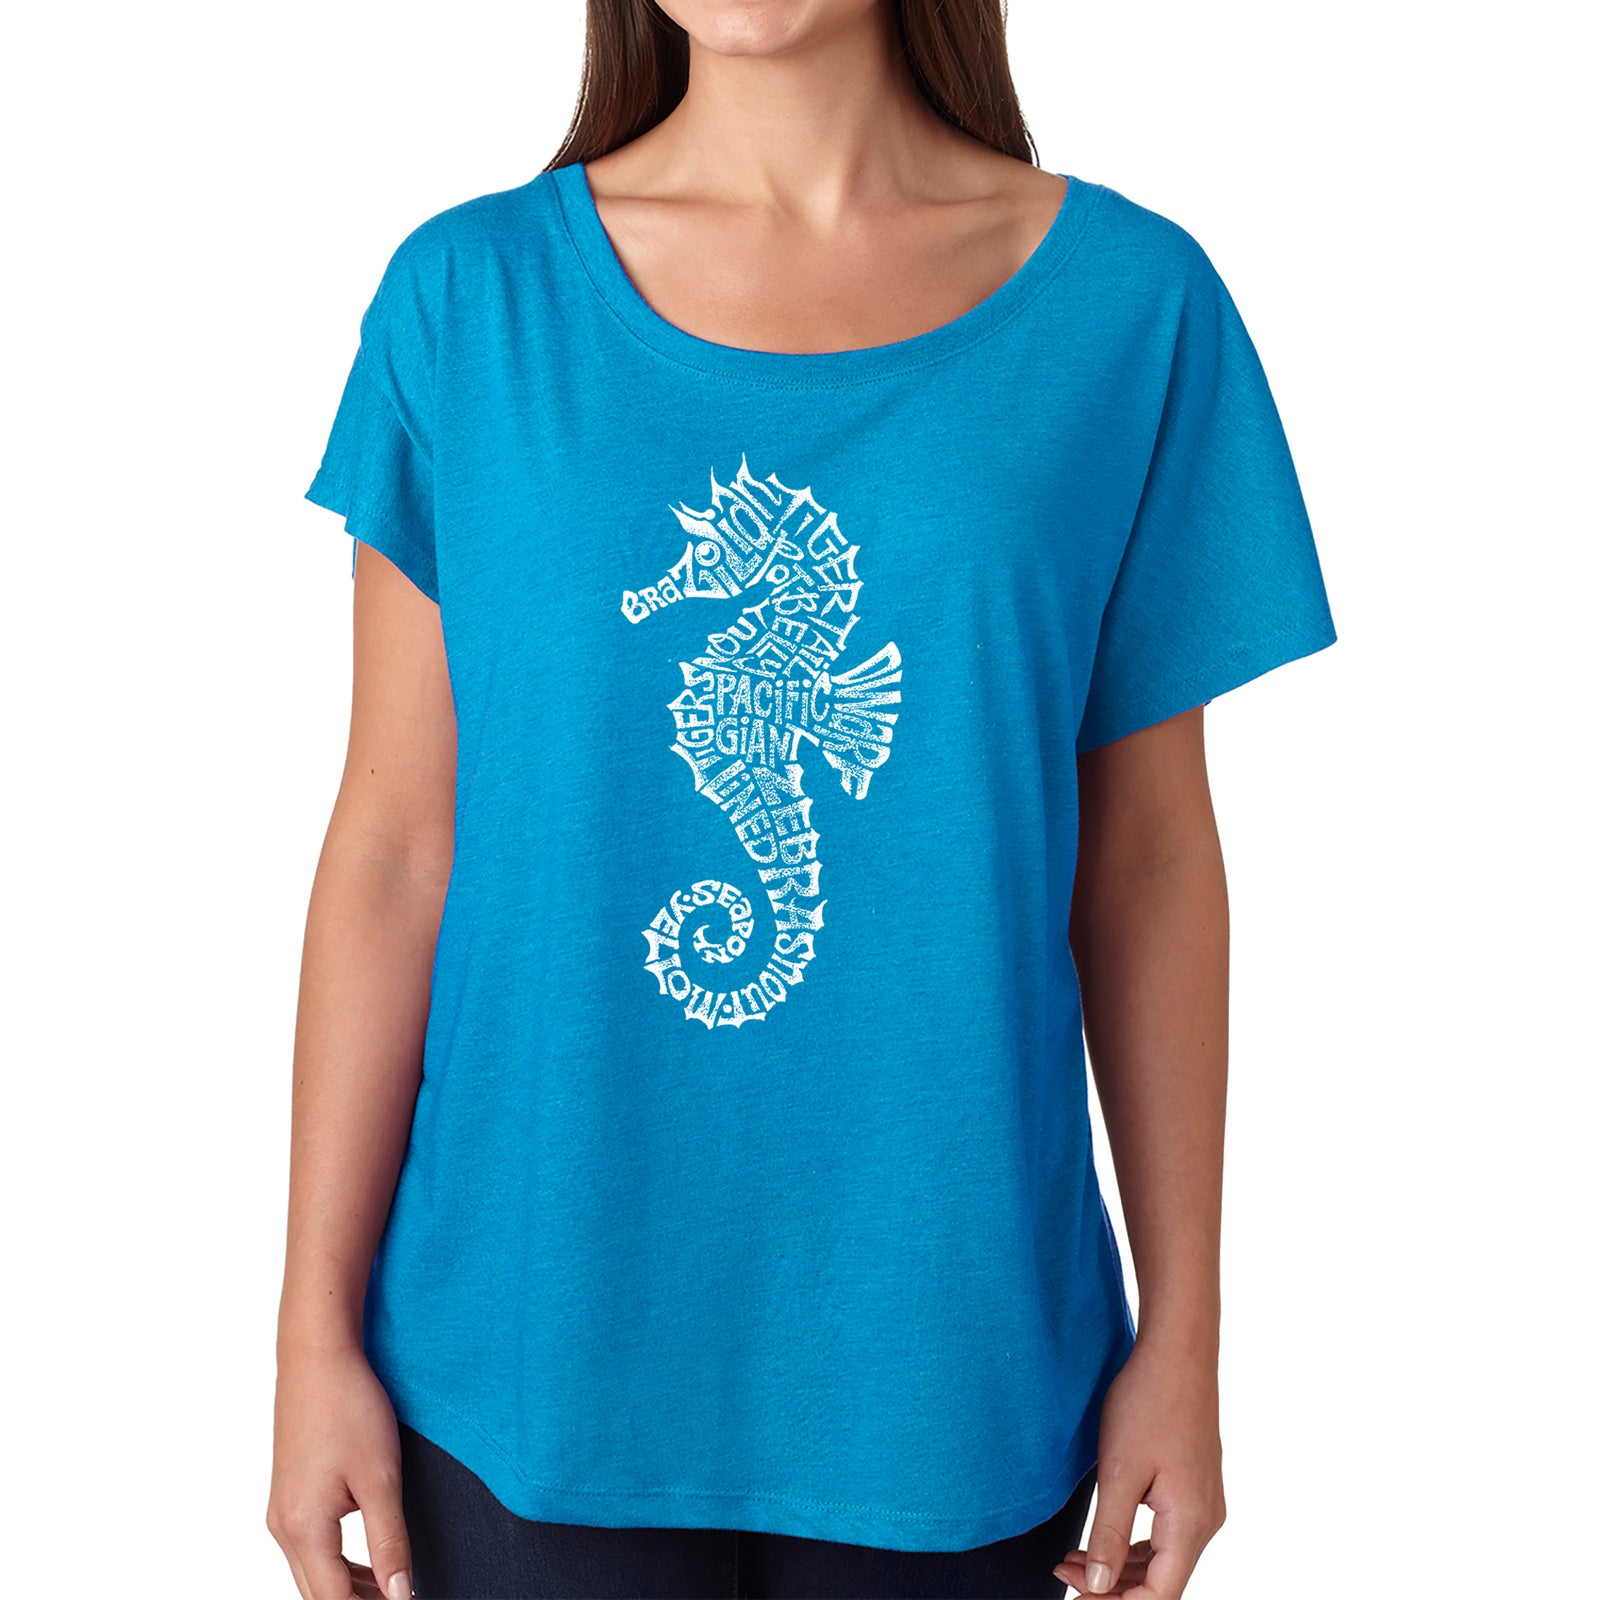 Women's Loose Fit Dolman Cut Word Art Shirt - Types of Seahorse